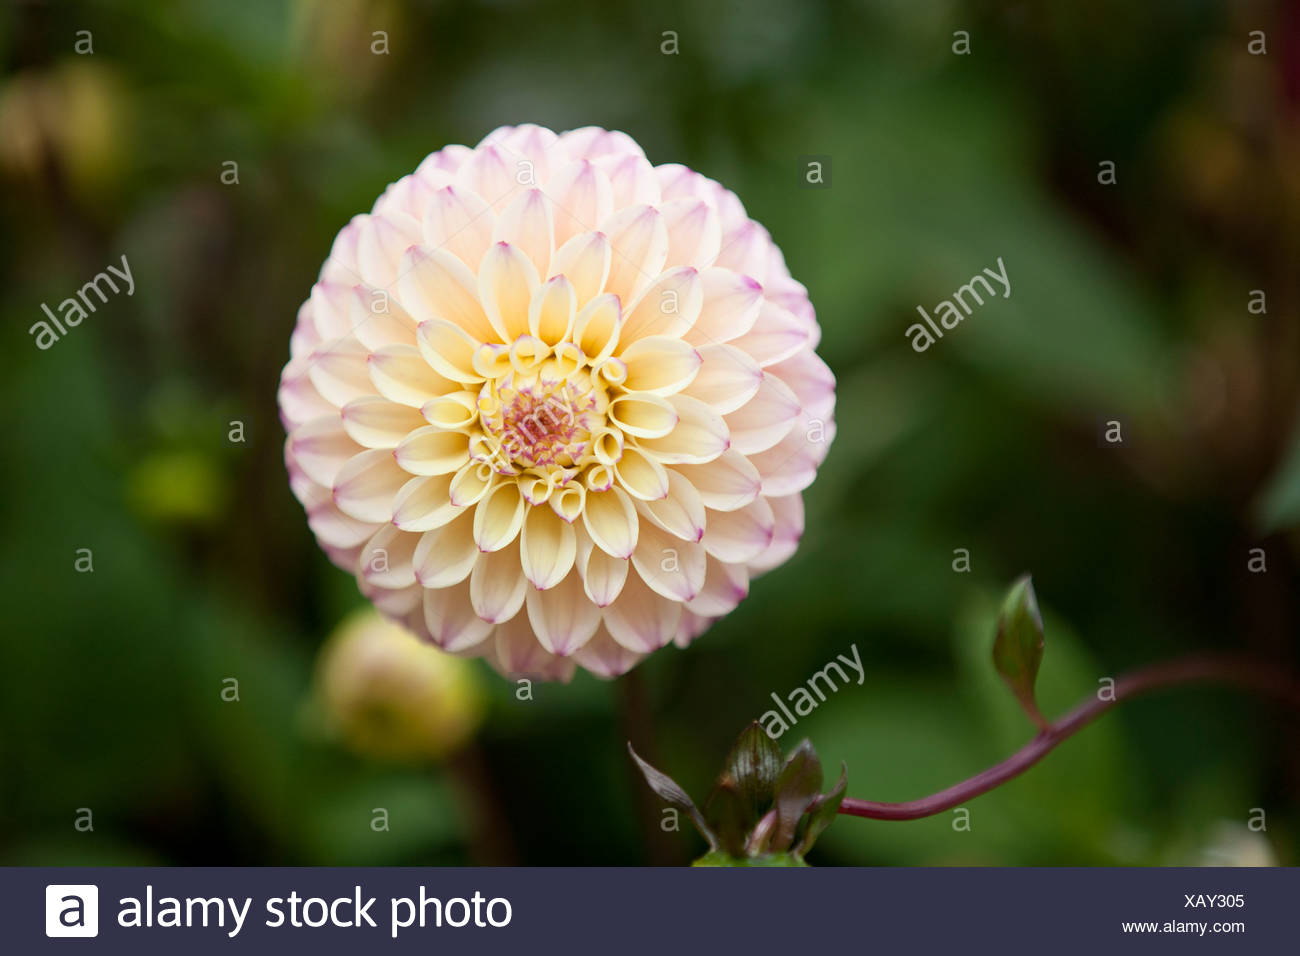 A white dahlia flower in bloom close up stock photo 282107509 alamy a white dahlia flower in bloom close up izmirmasajfo